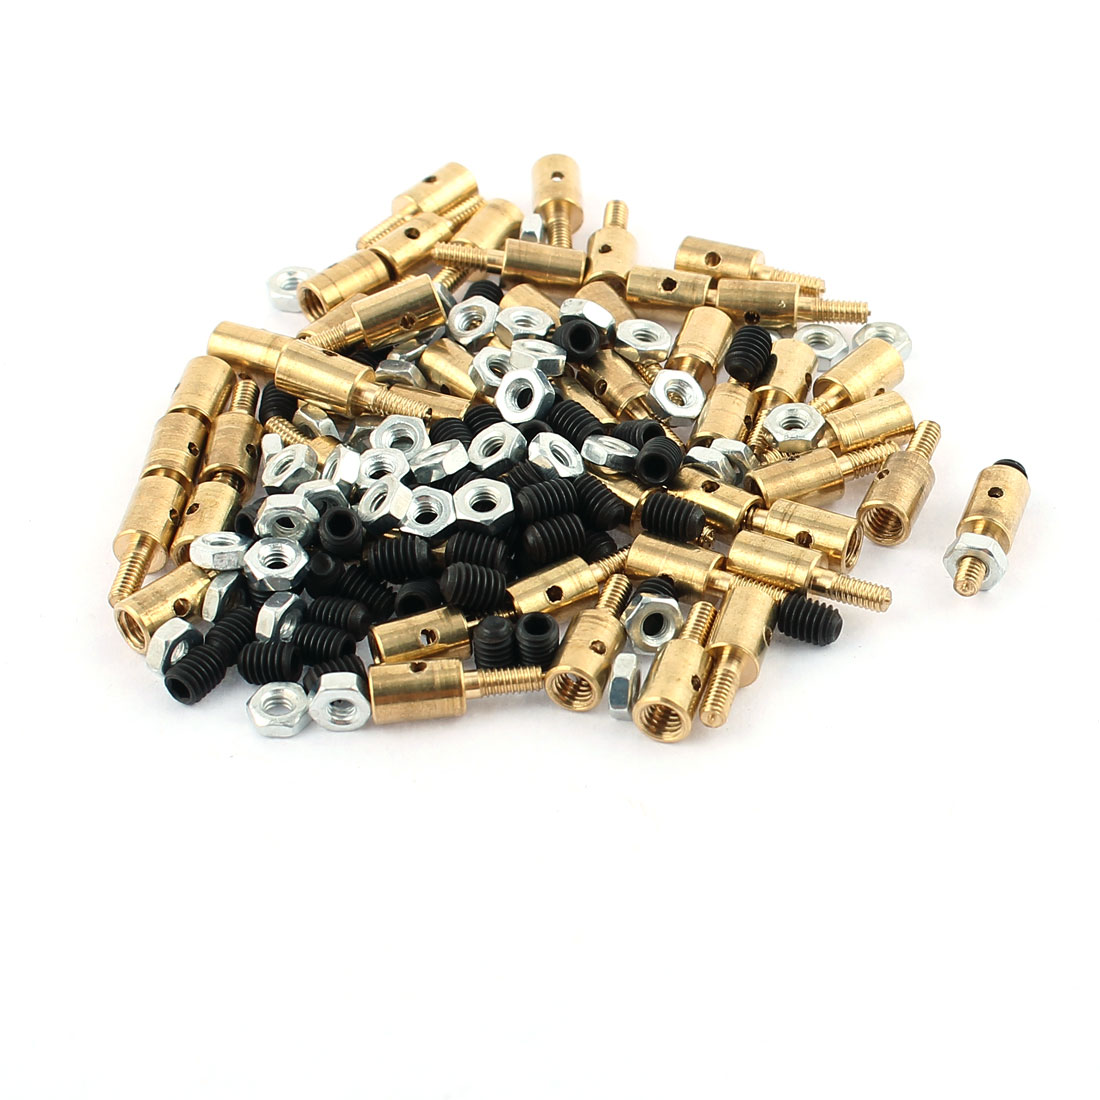 50 Pcs 4 x 2.5 x 11mm Copper Linkage Stoppers PRC Push Rod Keepers w Screws